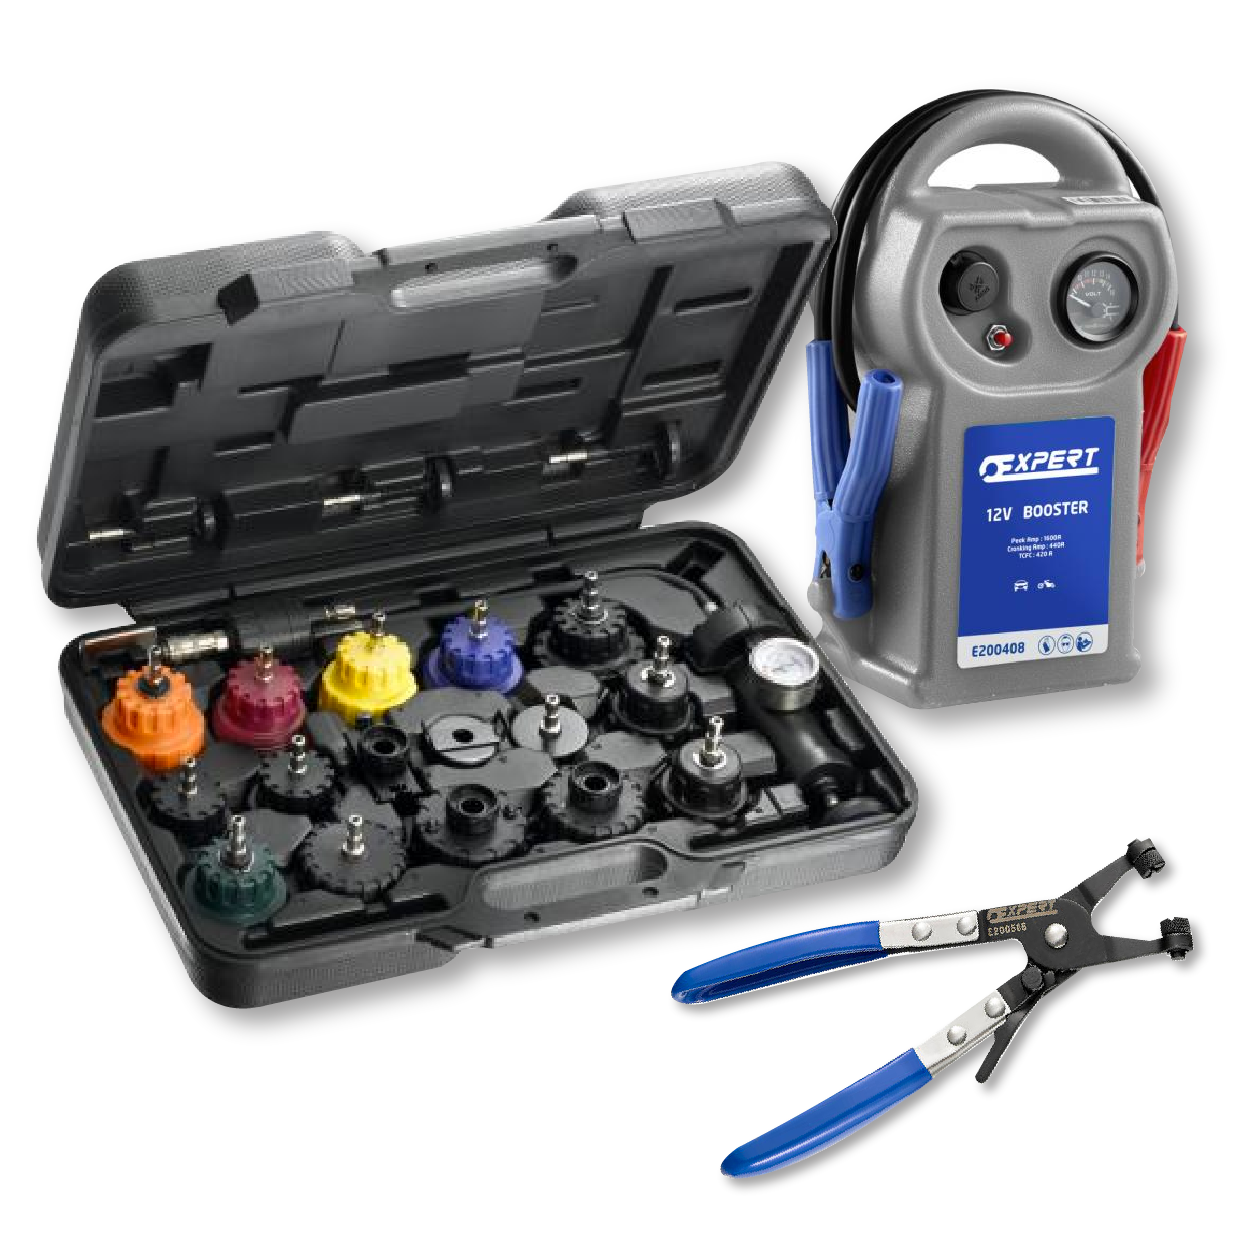 Engine Maintenance Tools